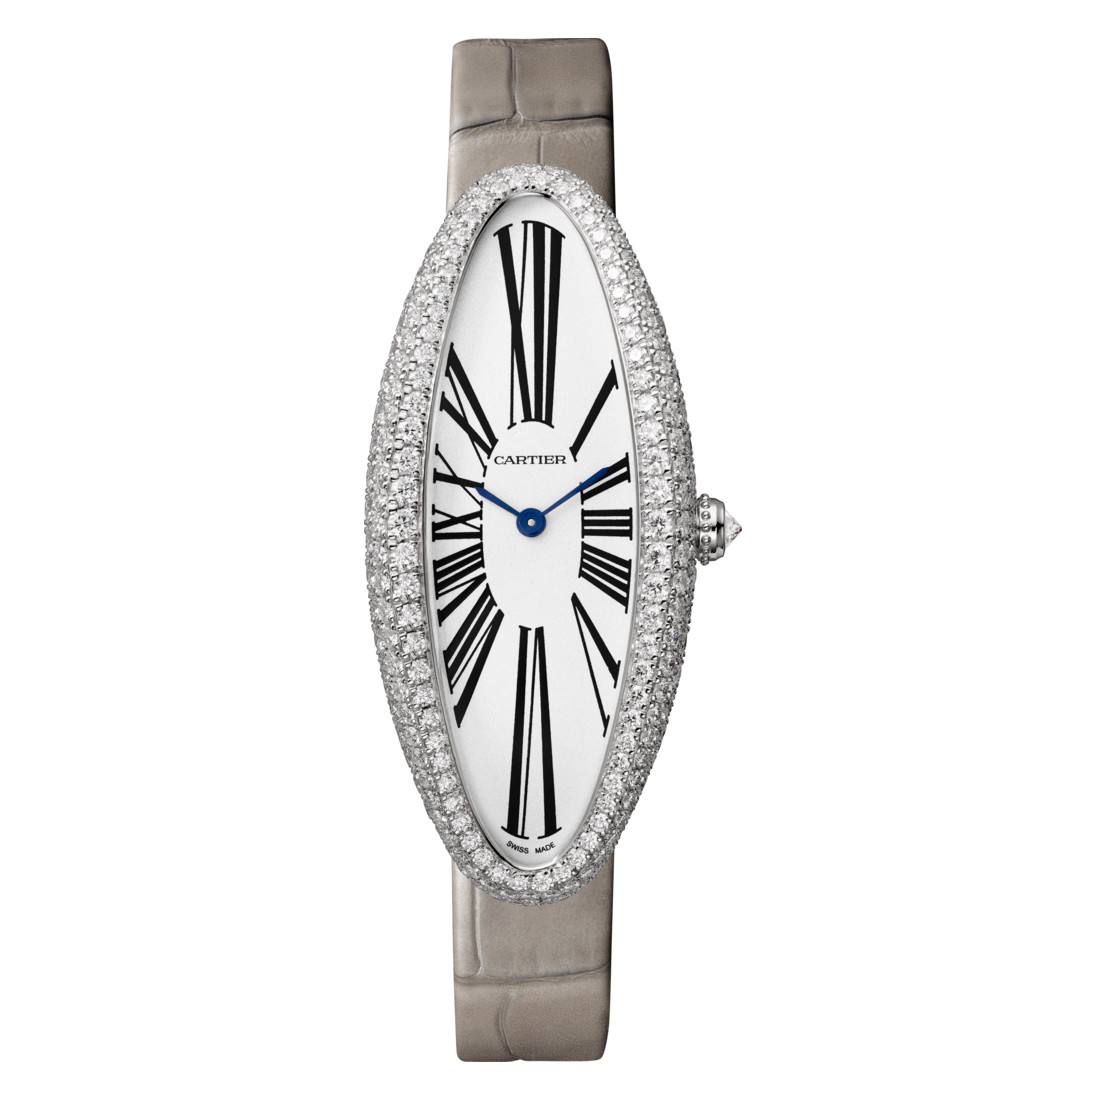 Baignoire Allongée White Gold & Diamonds (WJBA0007)